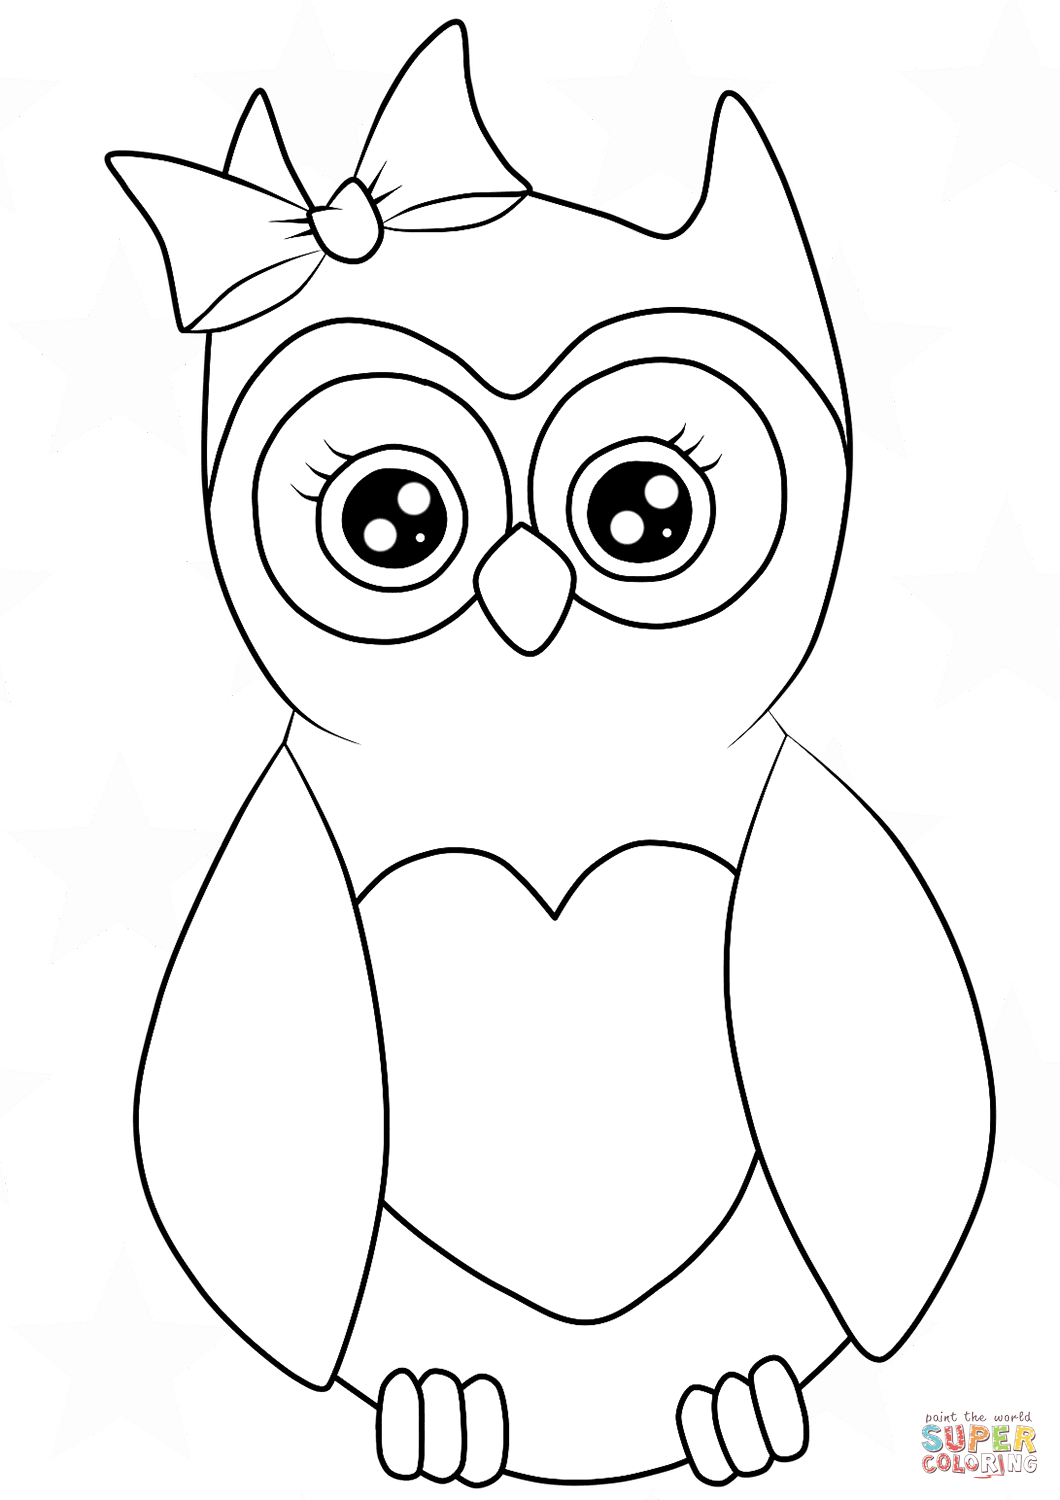 cute owl coloring pages 1000 images about owl on pinterest coloring baby owls coloring pages owl cute